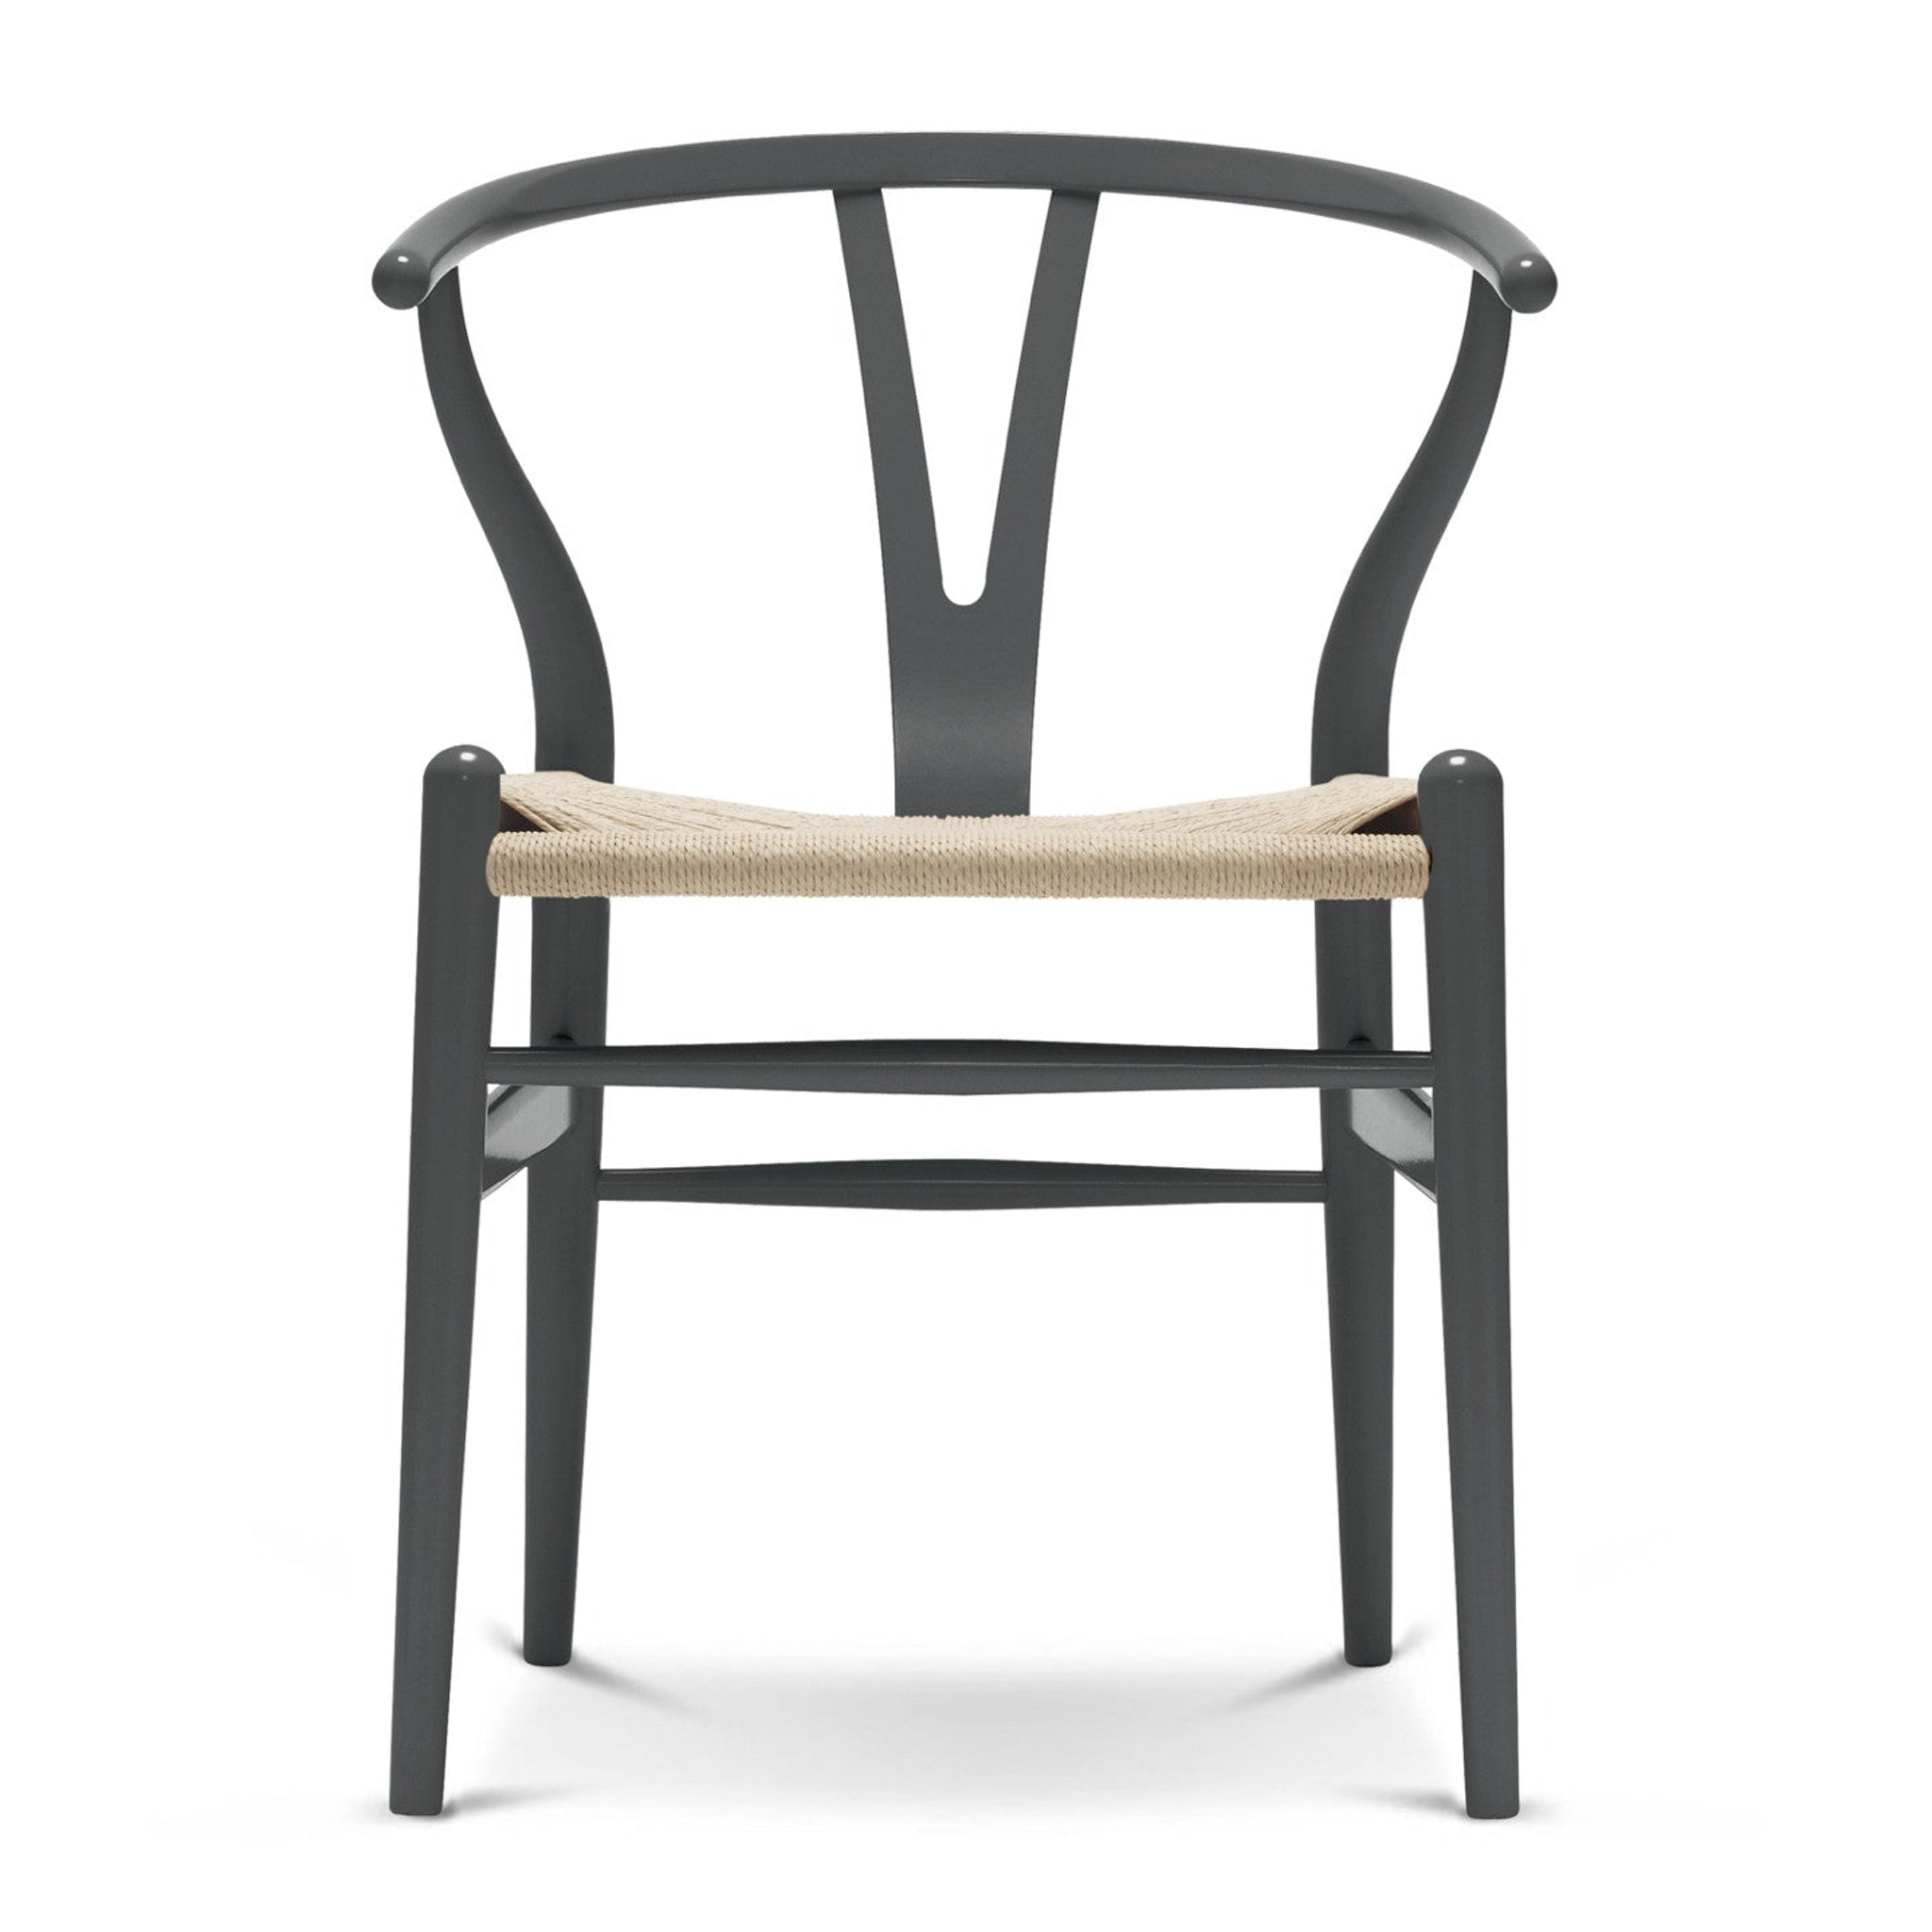 CH24 Wishbone Chair in Colour by Carl Hansen